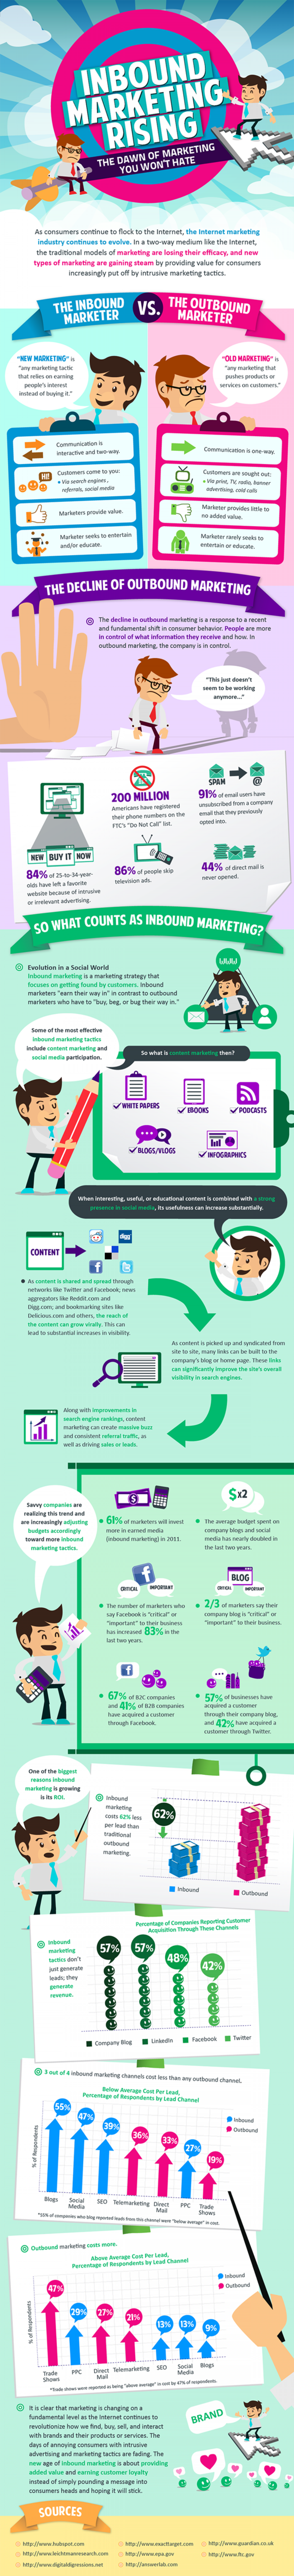 Inbound Marketing Rising Infographic